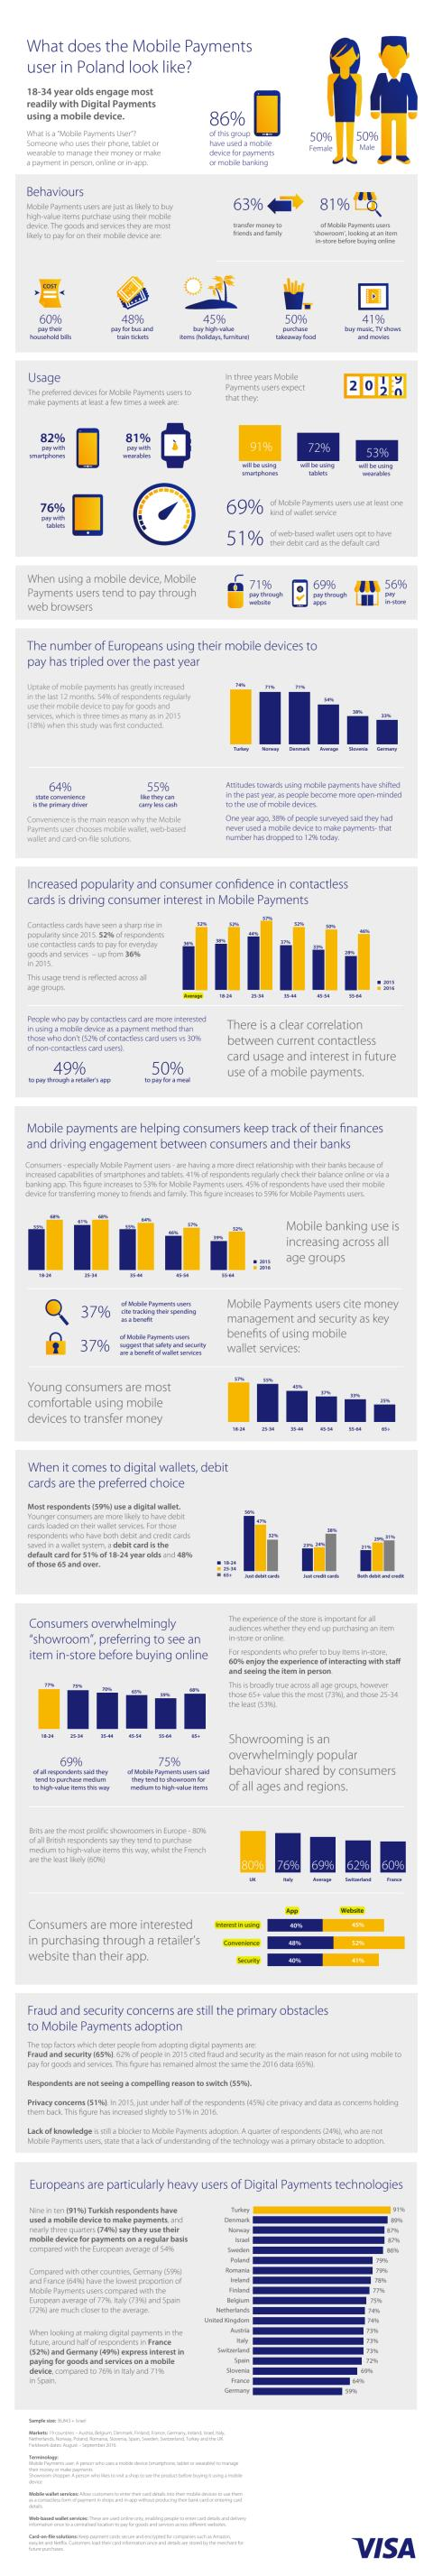 Digital Payments Study 2016 infographic